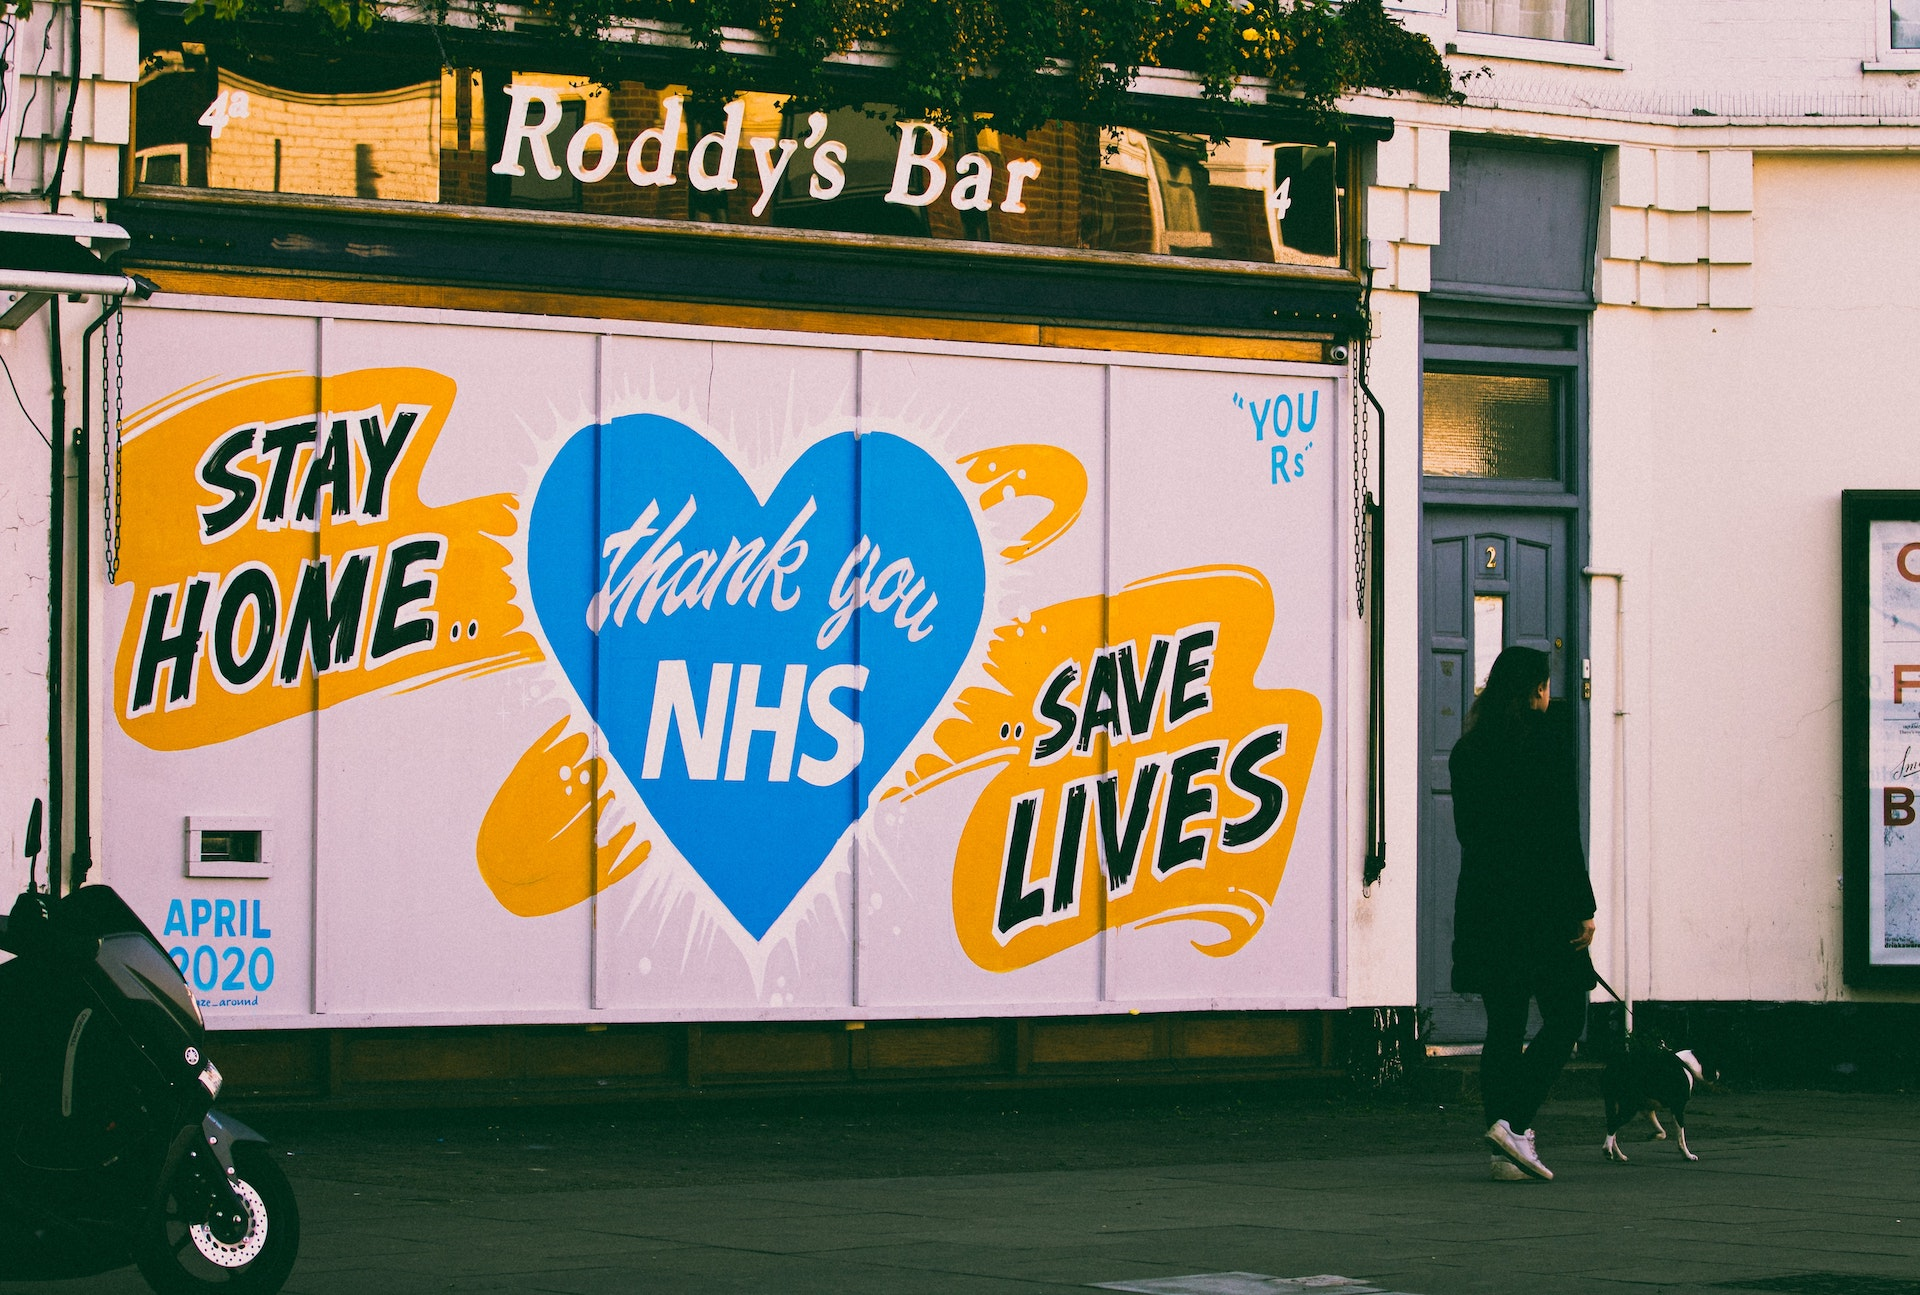 Stay home, save lives. NHS banner 2020.